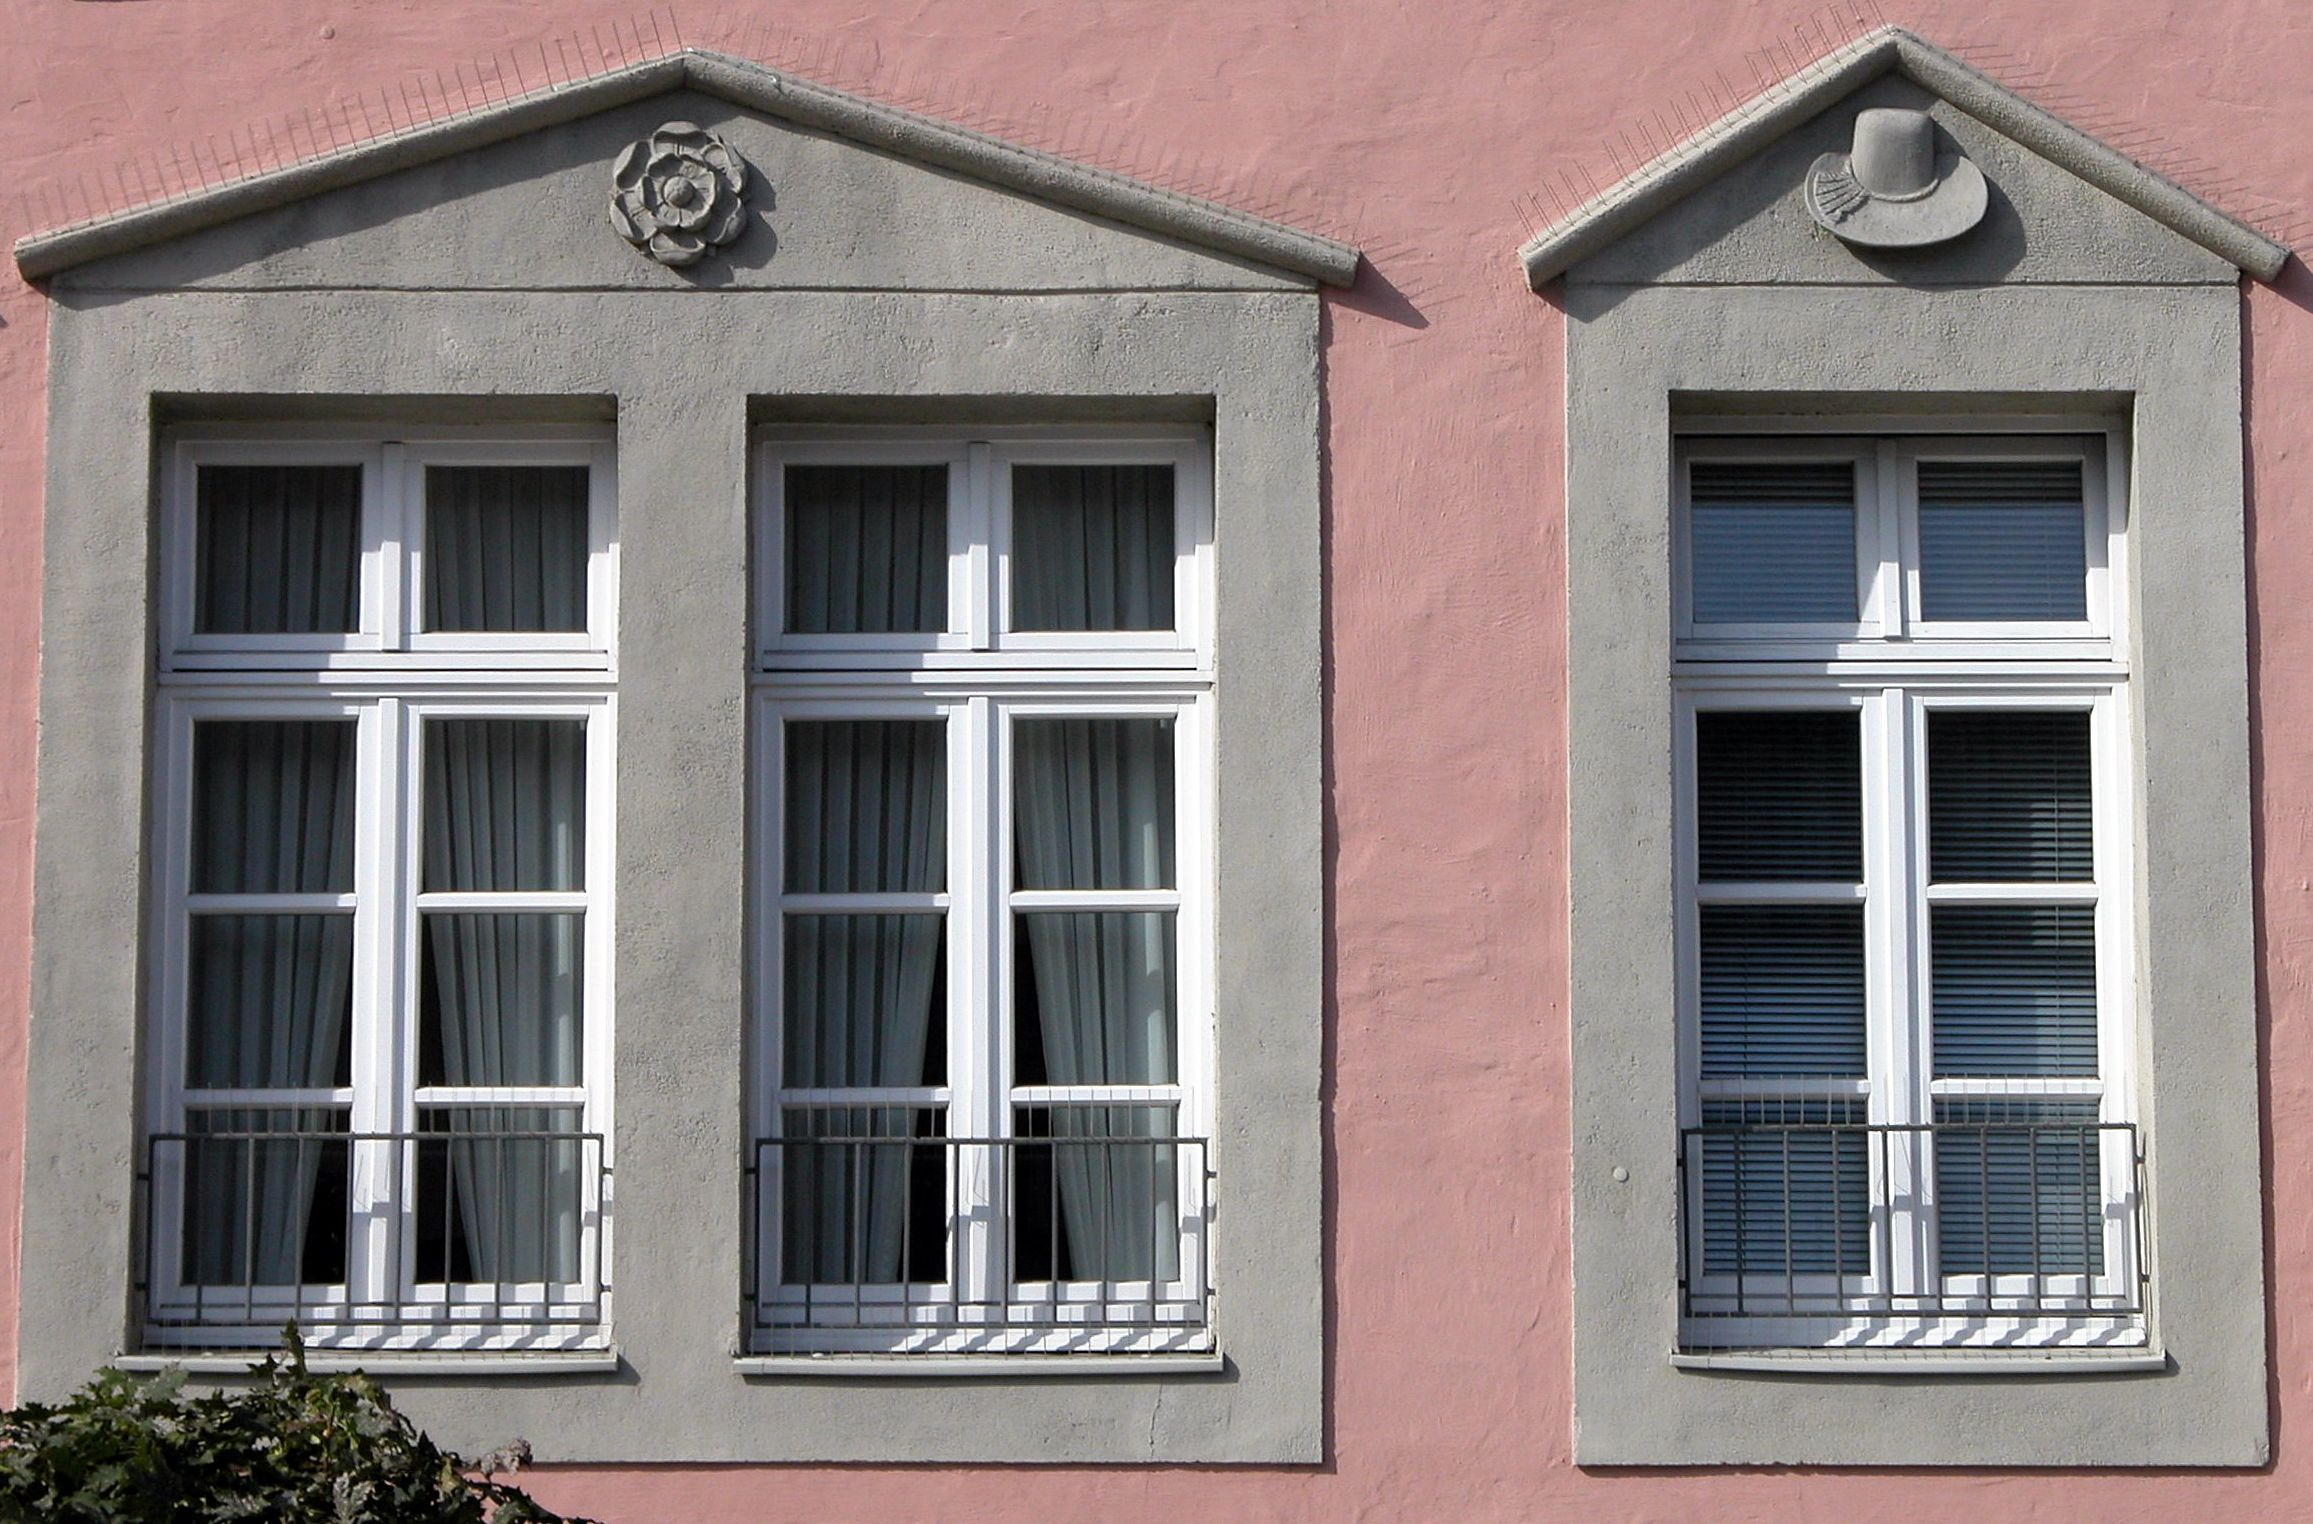 file braunschweig brunswick stechinelli haus fenster 2006 jpg wikimedia commons. Black Bedroom Furniture Sets. Home Design Ideas